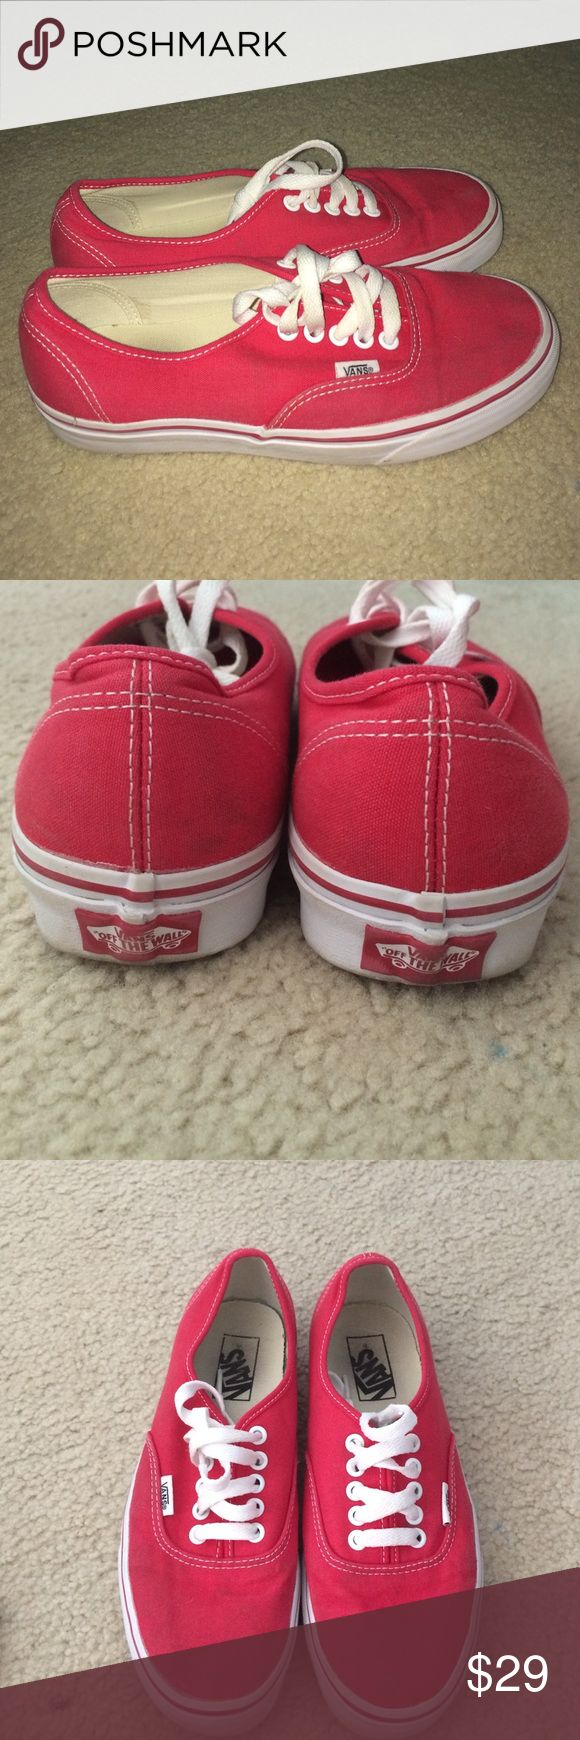 Vans classics Classic red vans. Good condition, barely worn. 6.5M 8W. One slightly visible stain on front of shoe. Make an offer if interested!😁 Vans Shoes Sneakers